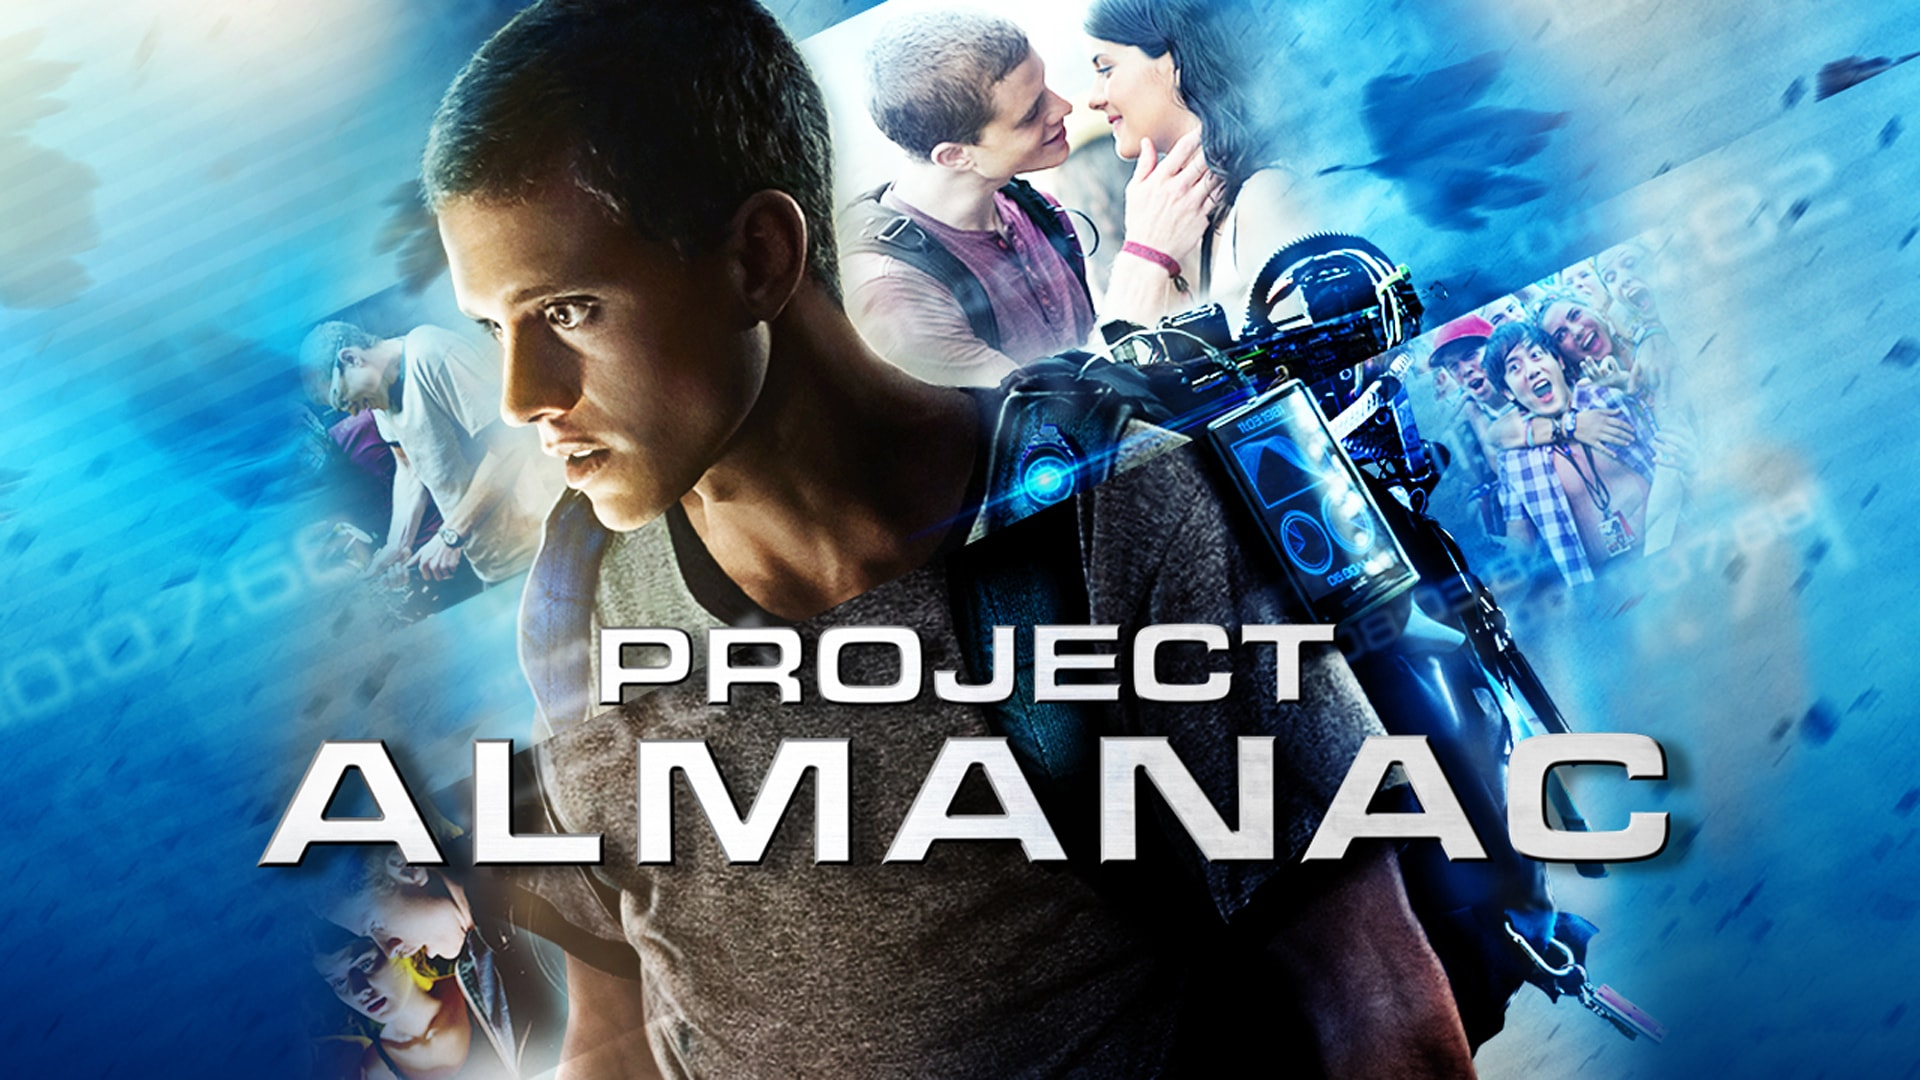 Project Almanac widescreen wallpapers